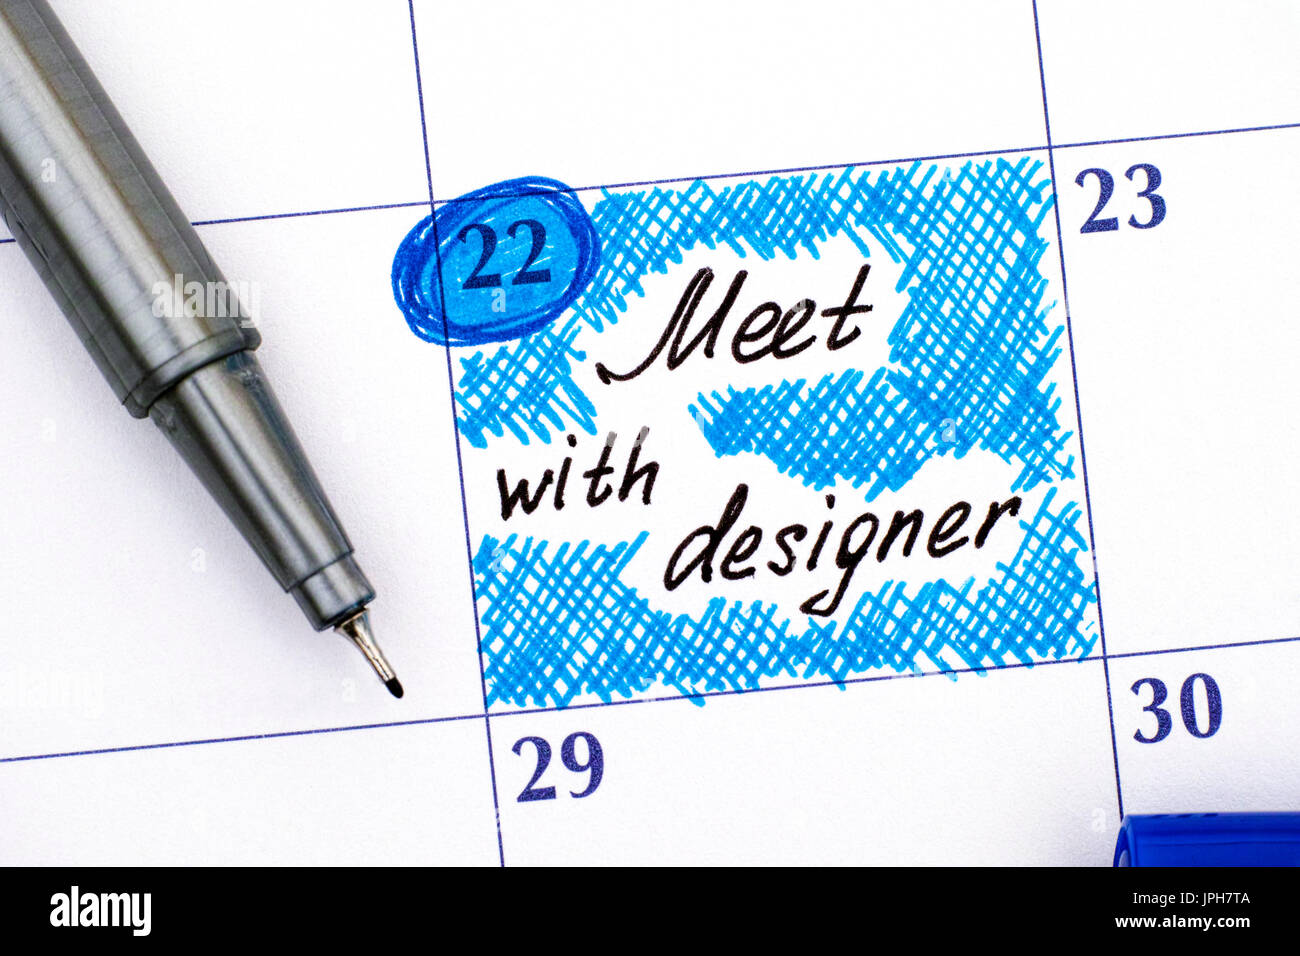 Reminder Meet with designer in calendar with blue pen. Close-up. - Stock Image